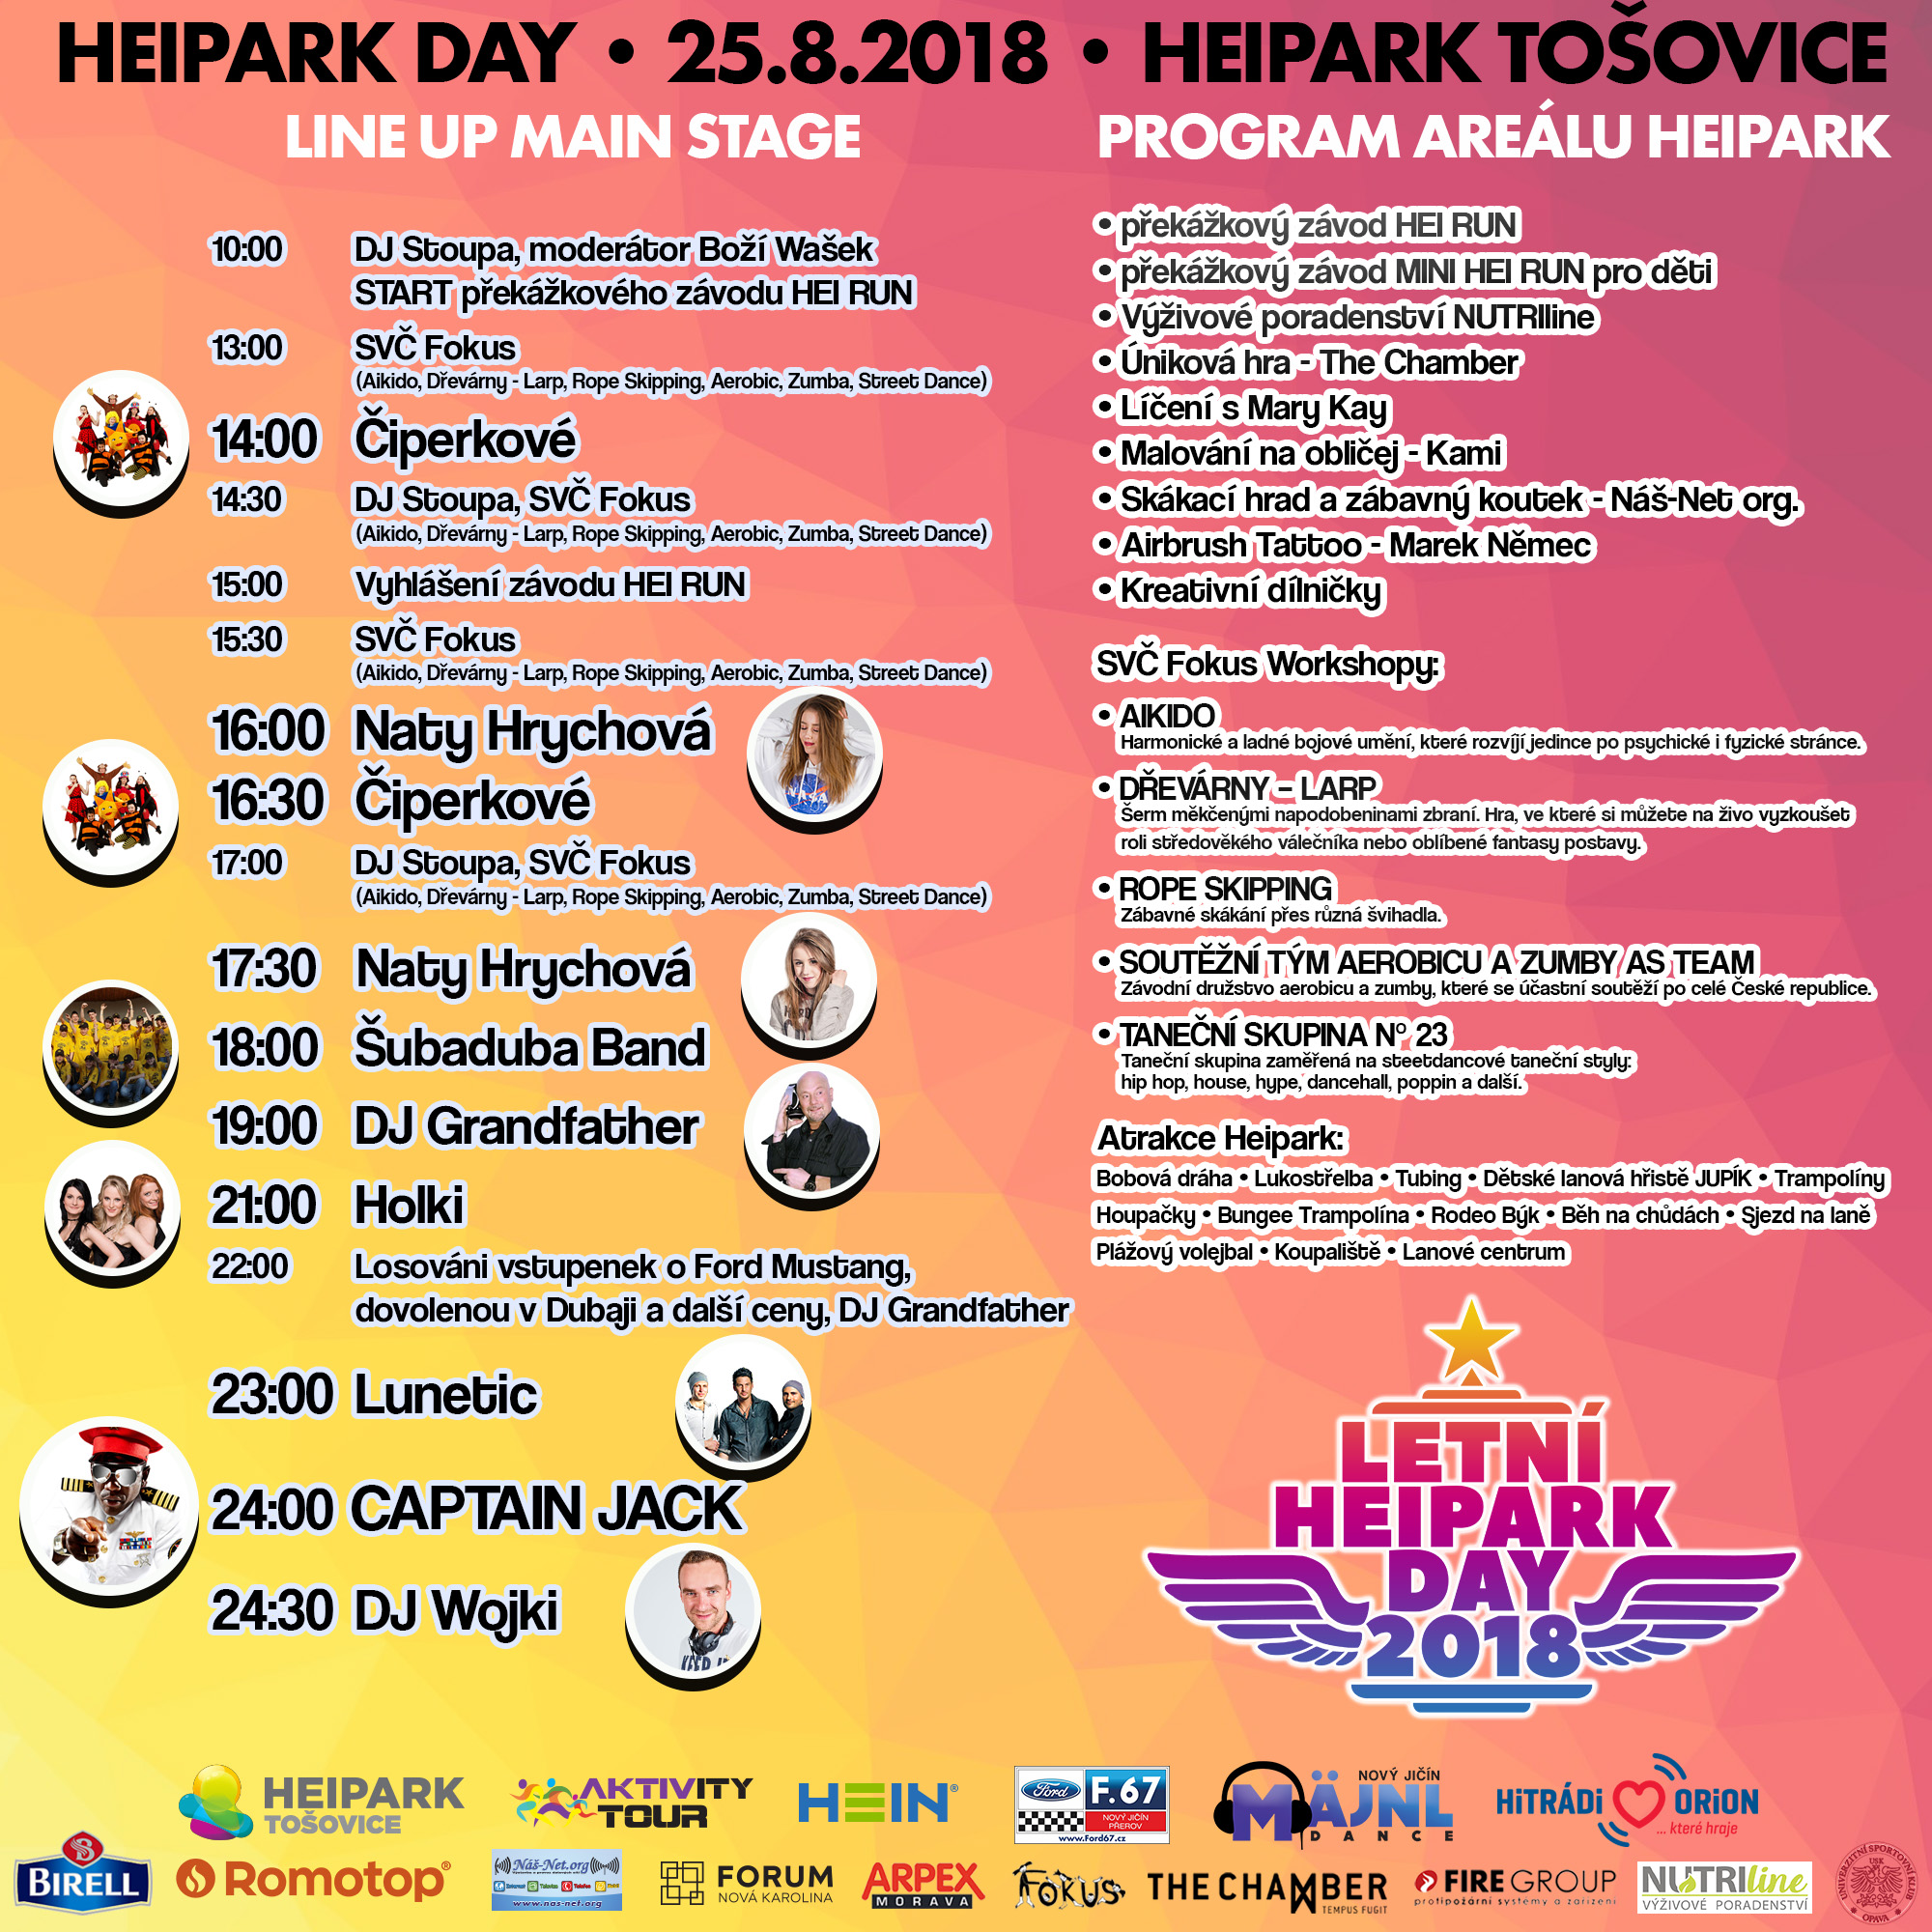 Heipark day program